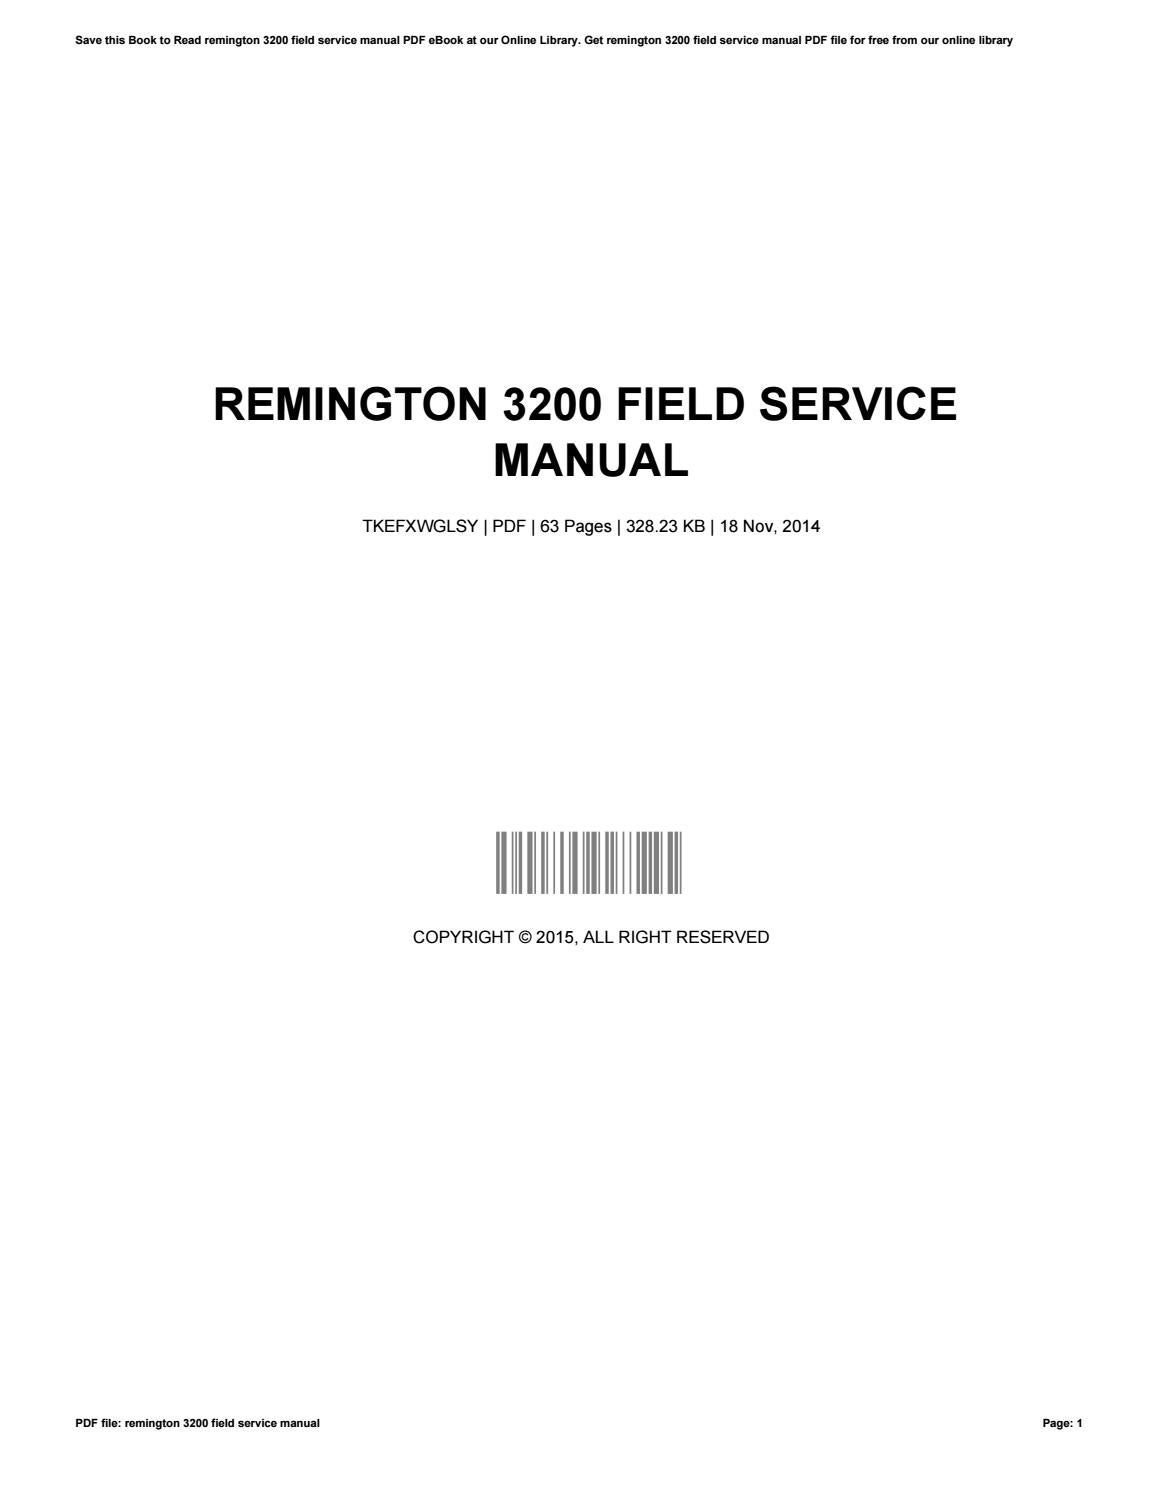 Service manual for a coleman powermate ebook array remington 3200 field service manual by williamivey2927 issuu rh issuu fandeluxe Choice Image